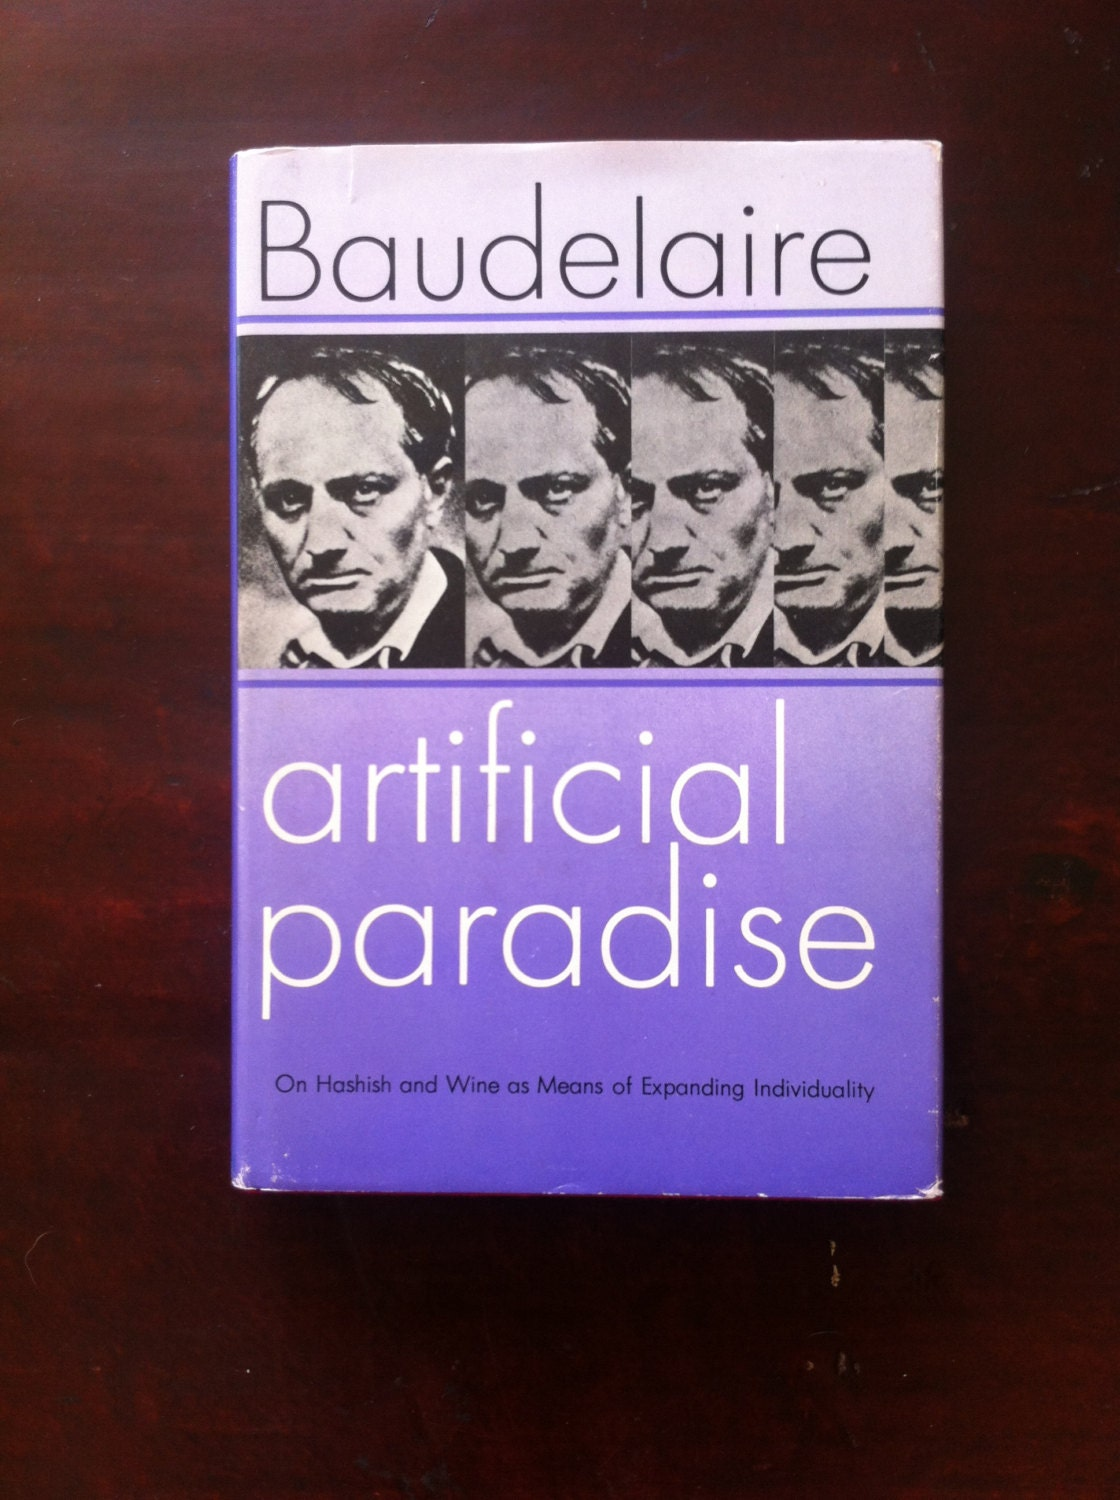 baudelaire essays english Literary analysis, charles baudelaire - analysis of paris spleen, by charles baudelaire writing was in french it would be in the english language, was born.